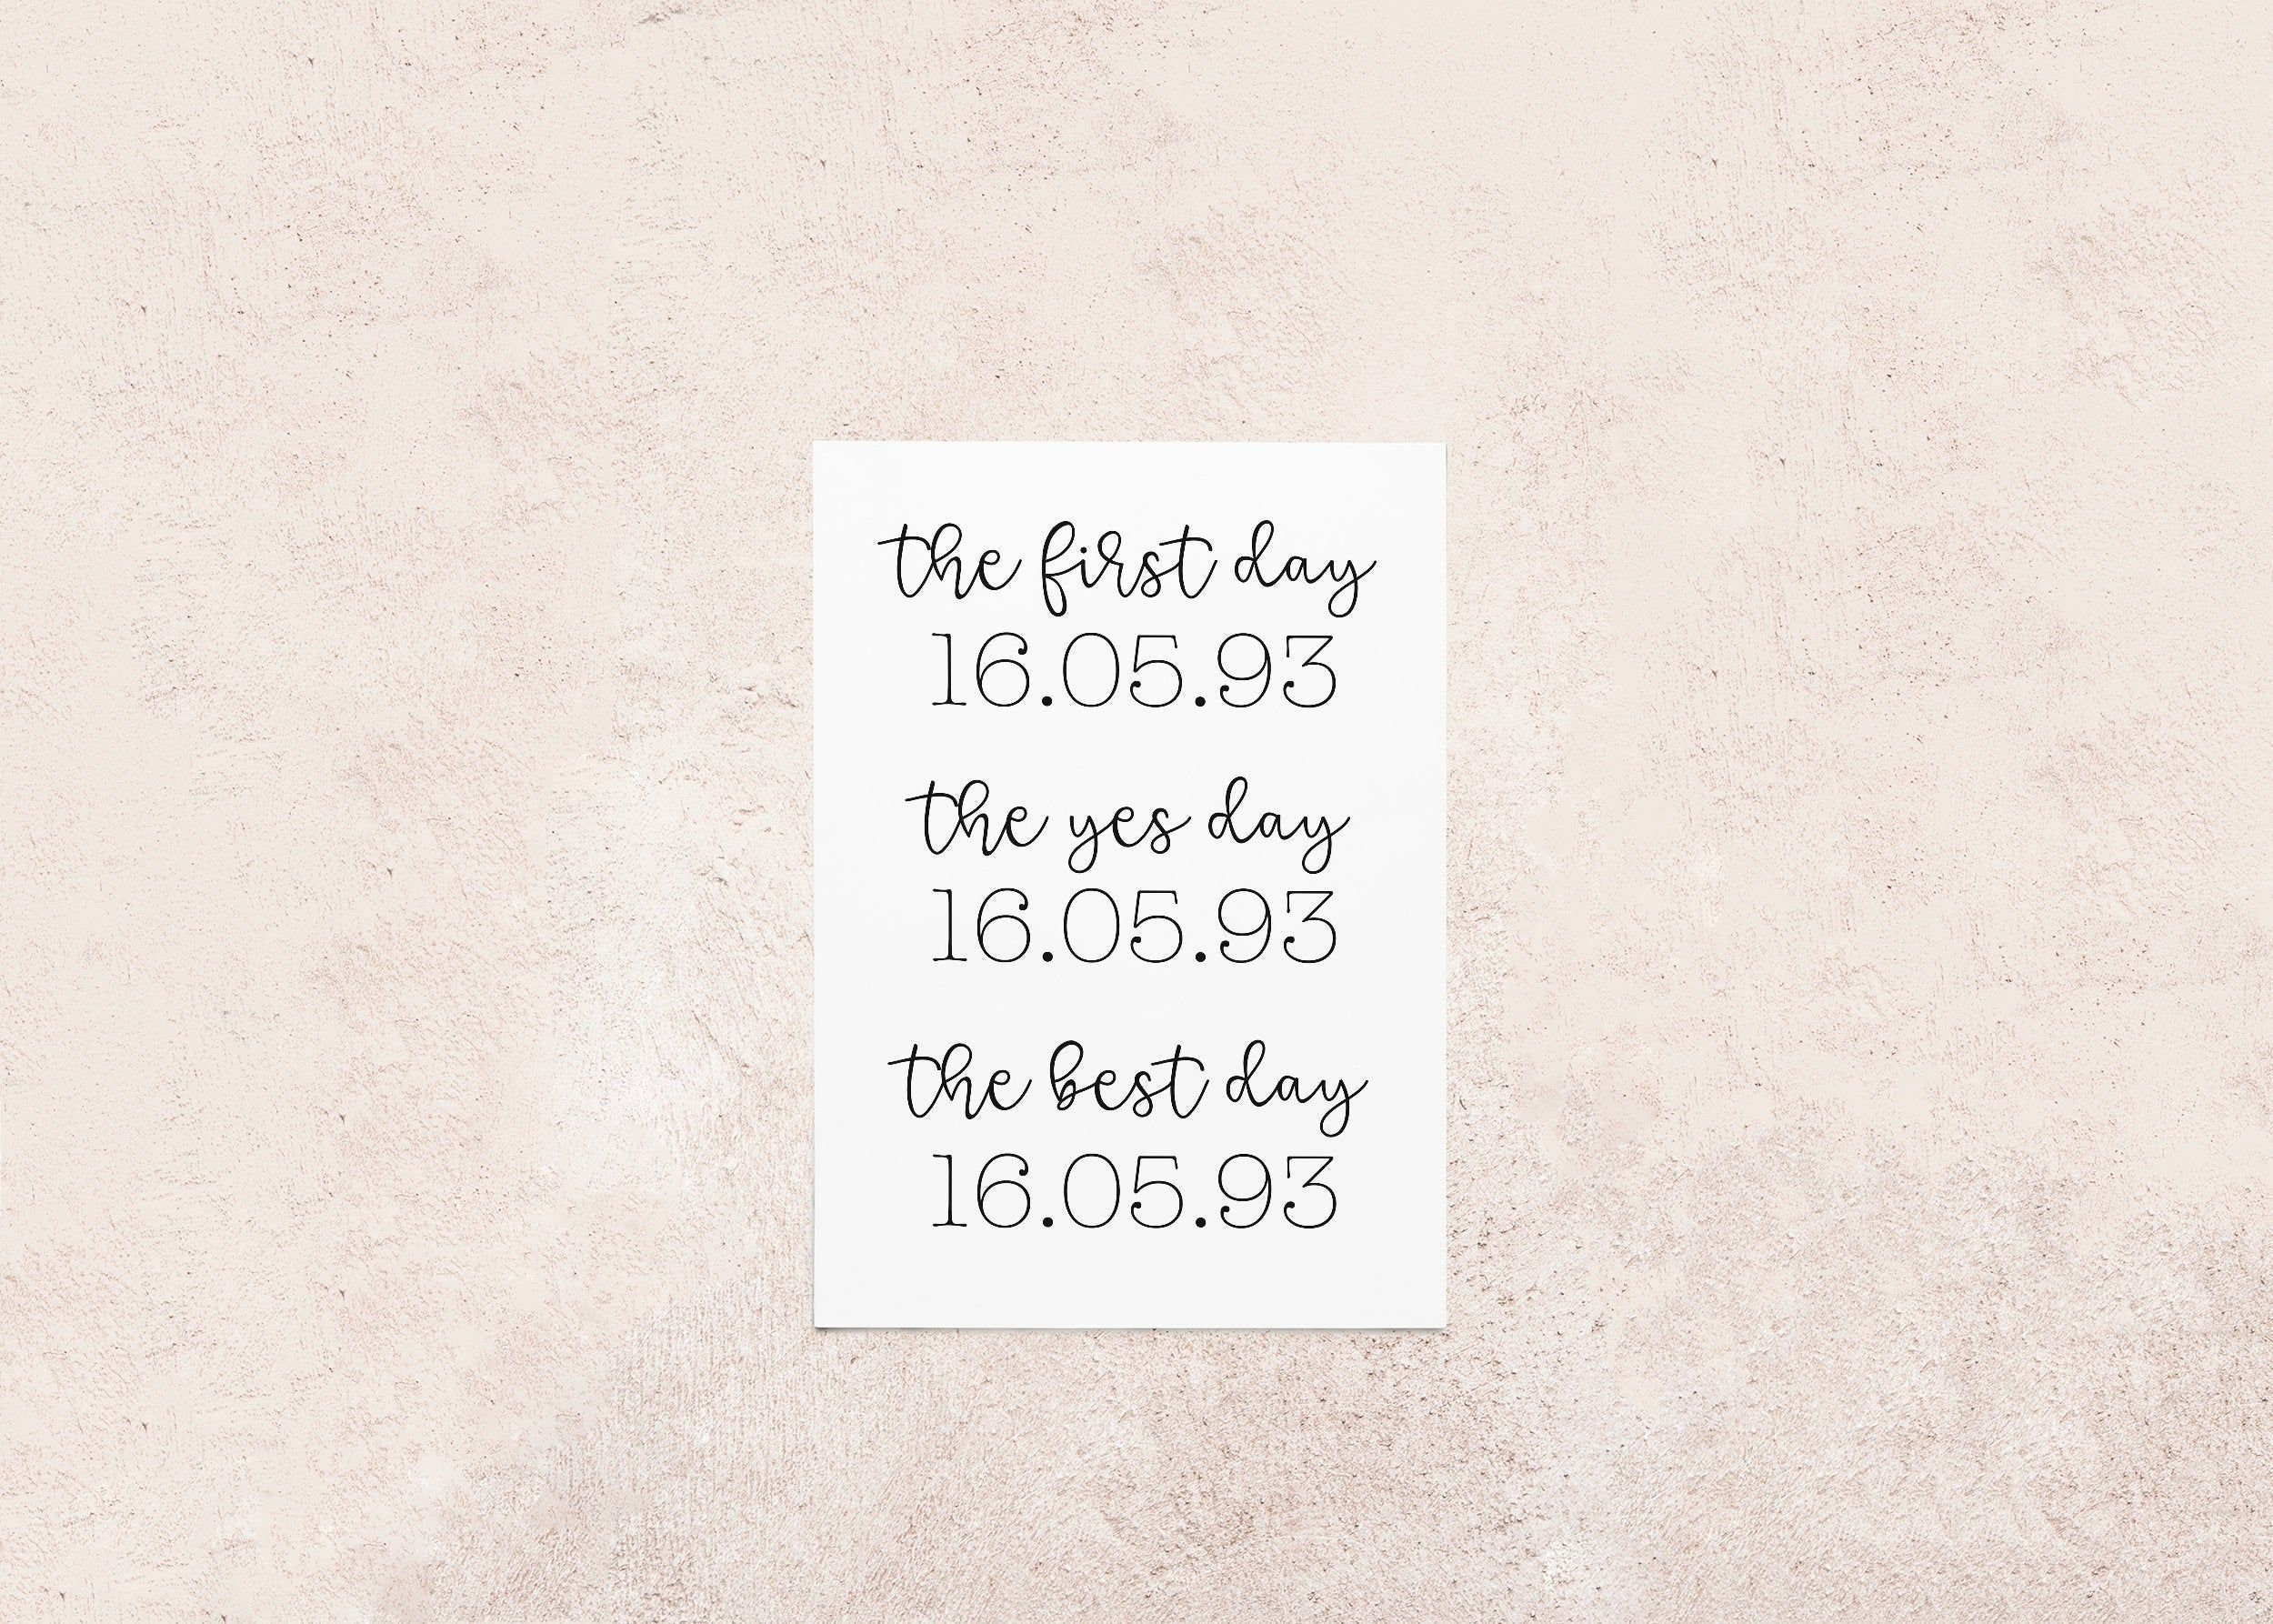 Relationship Dates Print The First Day The Yes Day The Forever